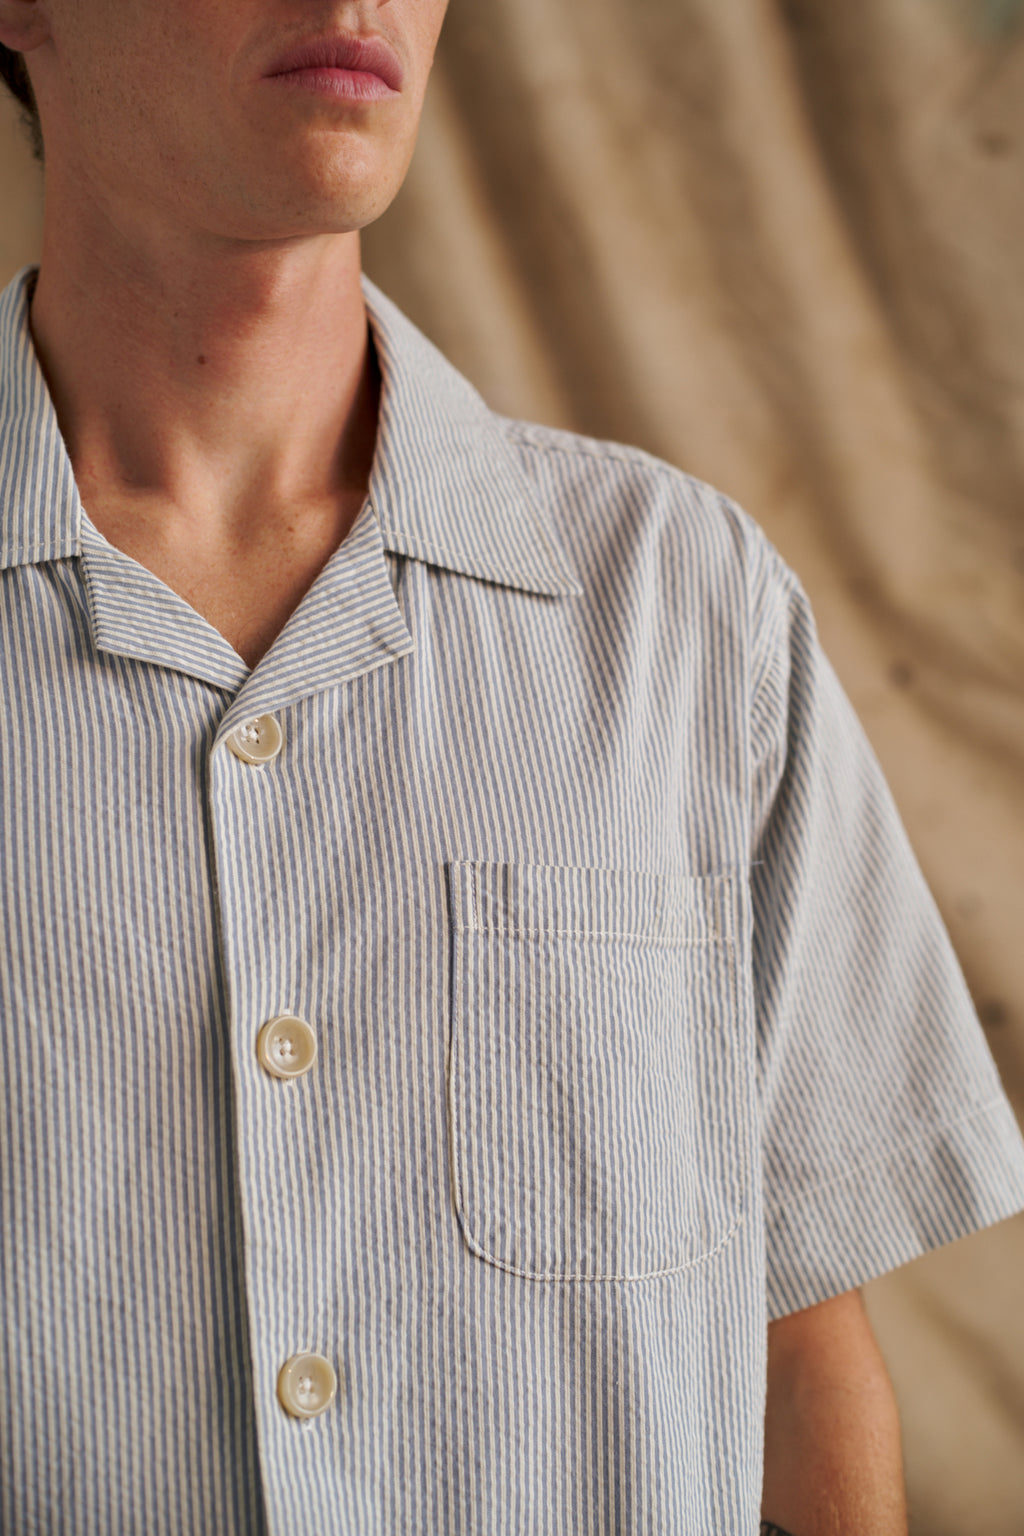 Powder Blue Japanese Seersucker Shirt